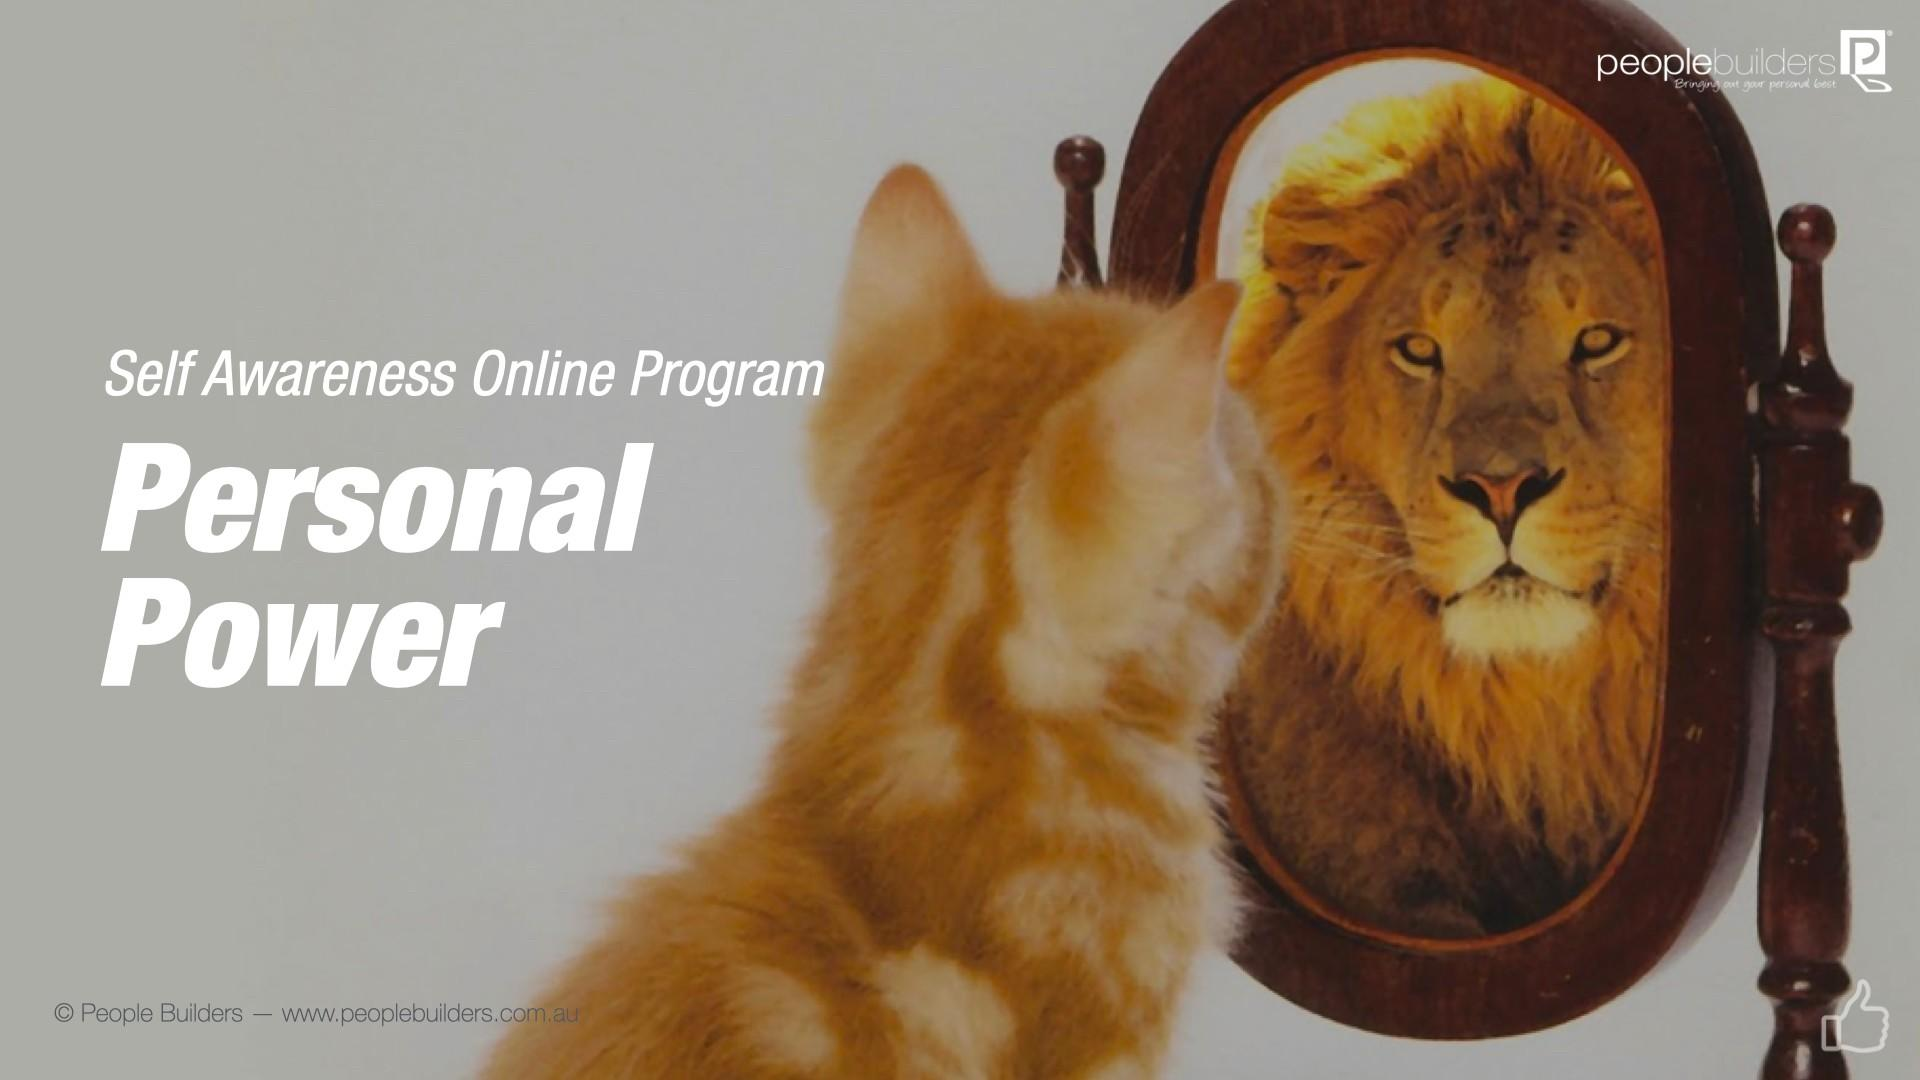 Personal Power Training poster showing cat  seeing himself as a tiger.